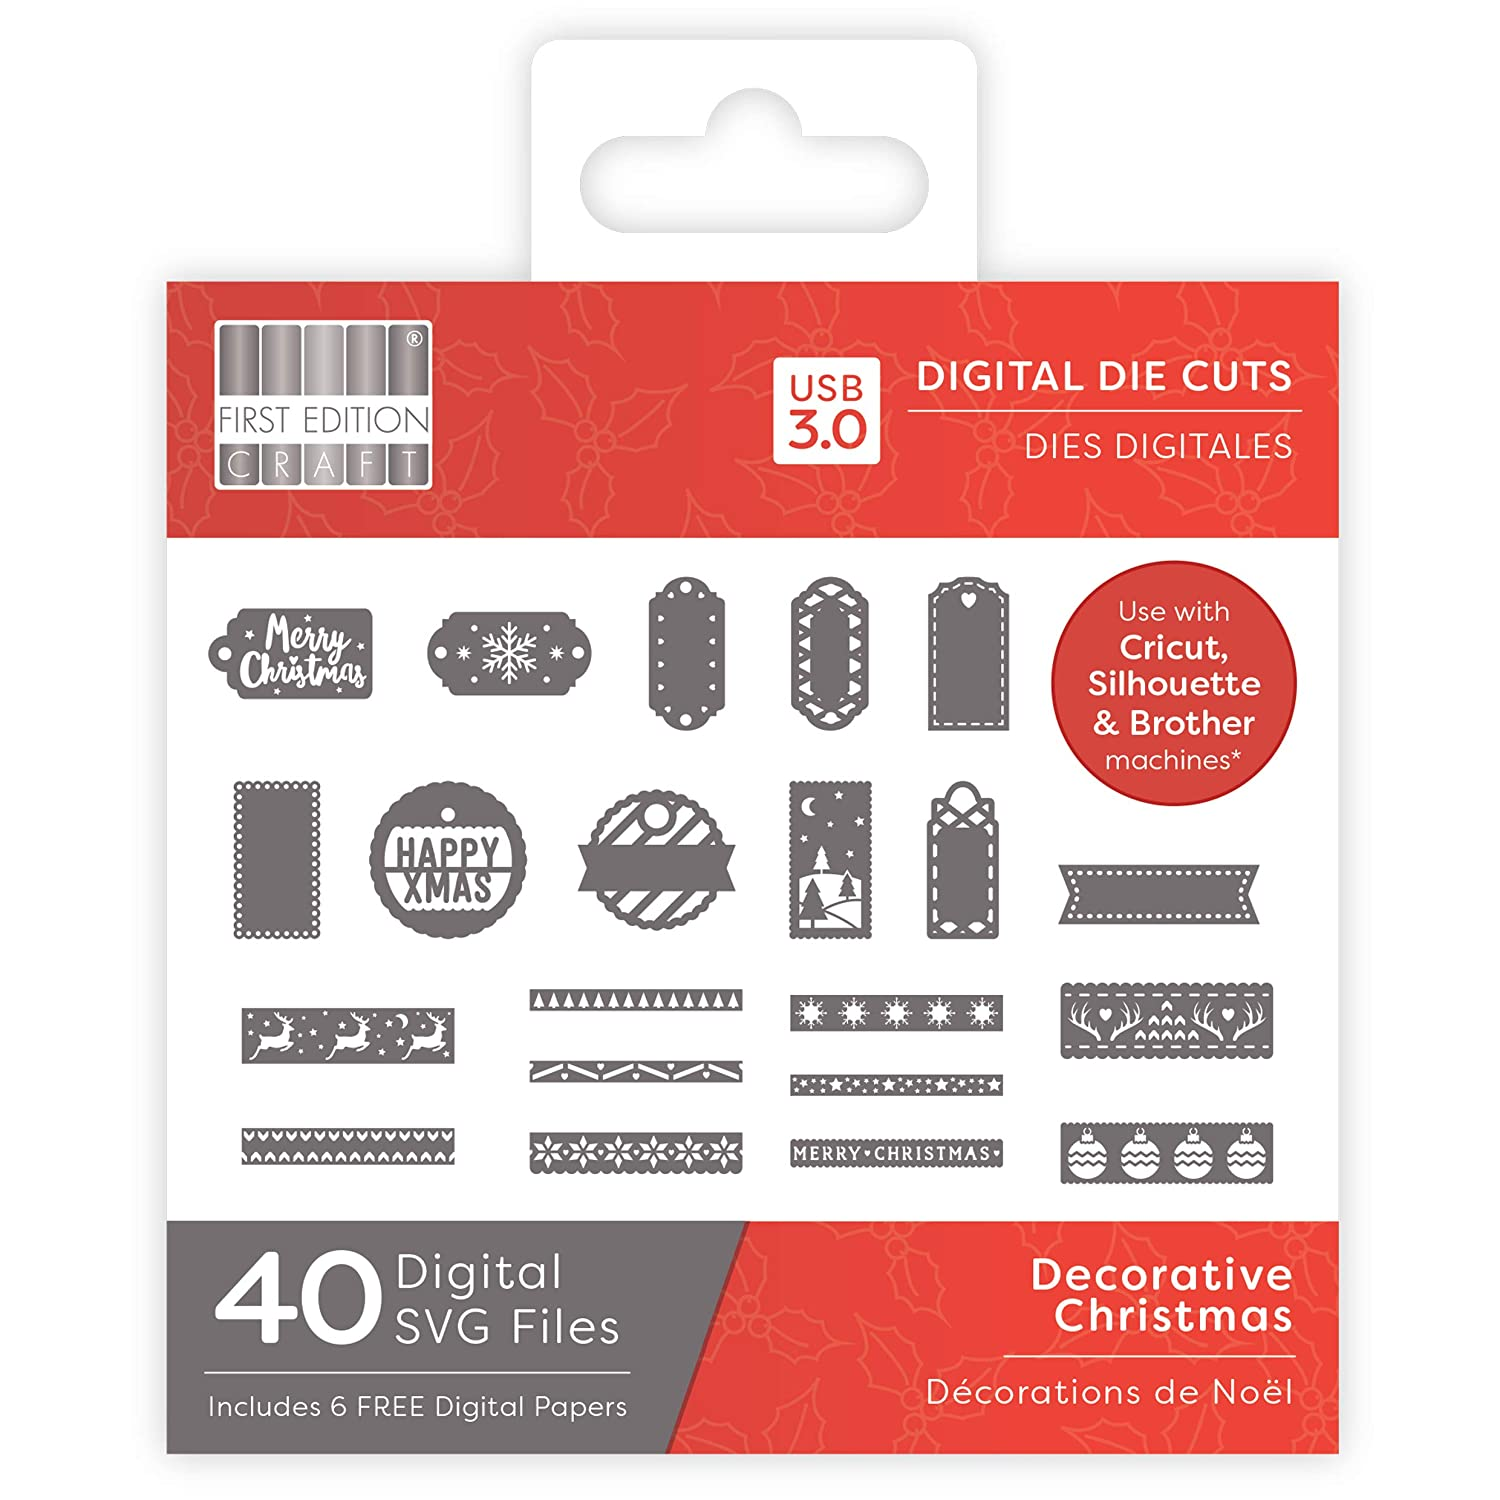 First Edition Digital Christmas Dies Buildable